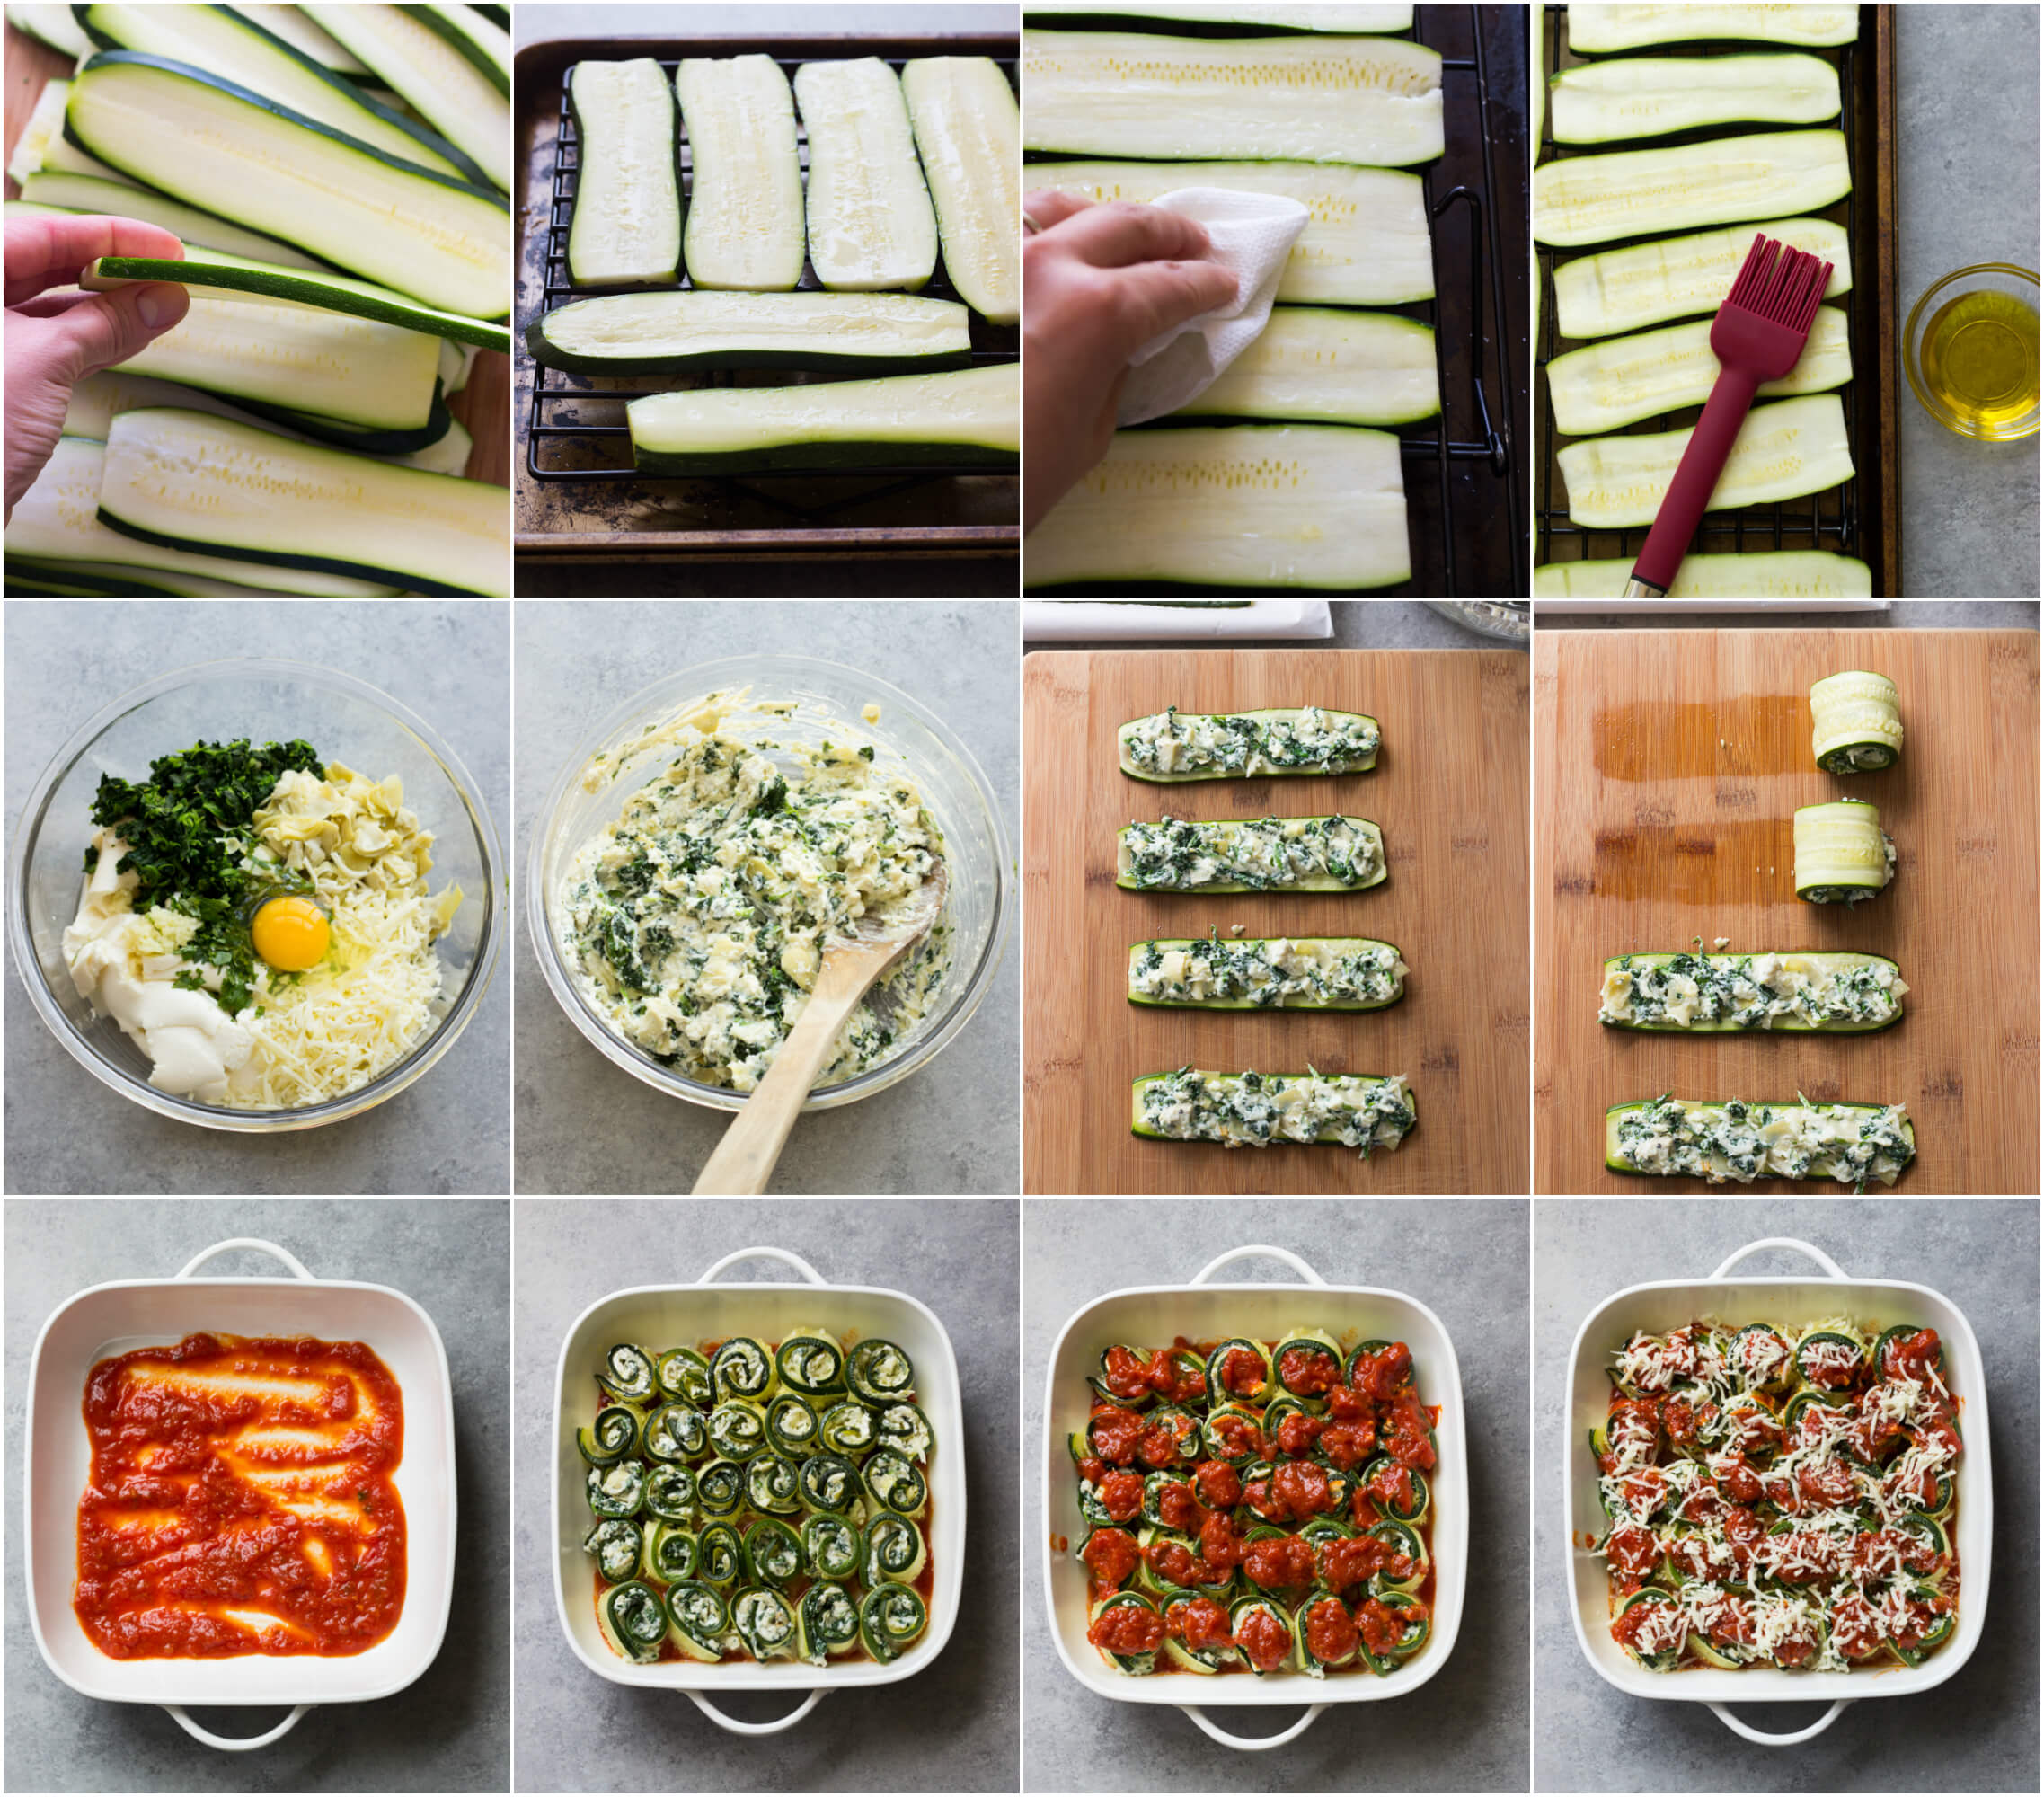 Zucchini Lasagna Roll Ups with Spinach and Artichokes - low carb, gluten free, and kid friendly!   littlebroken.com @littlebroken